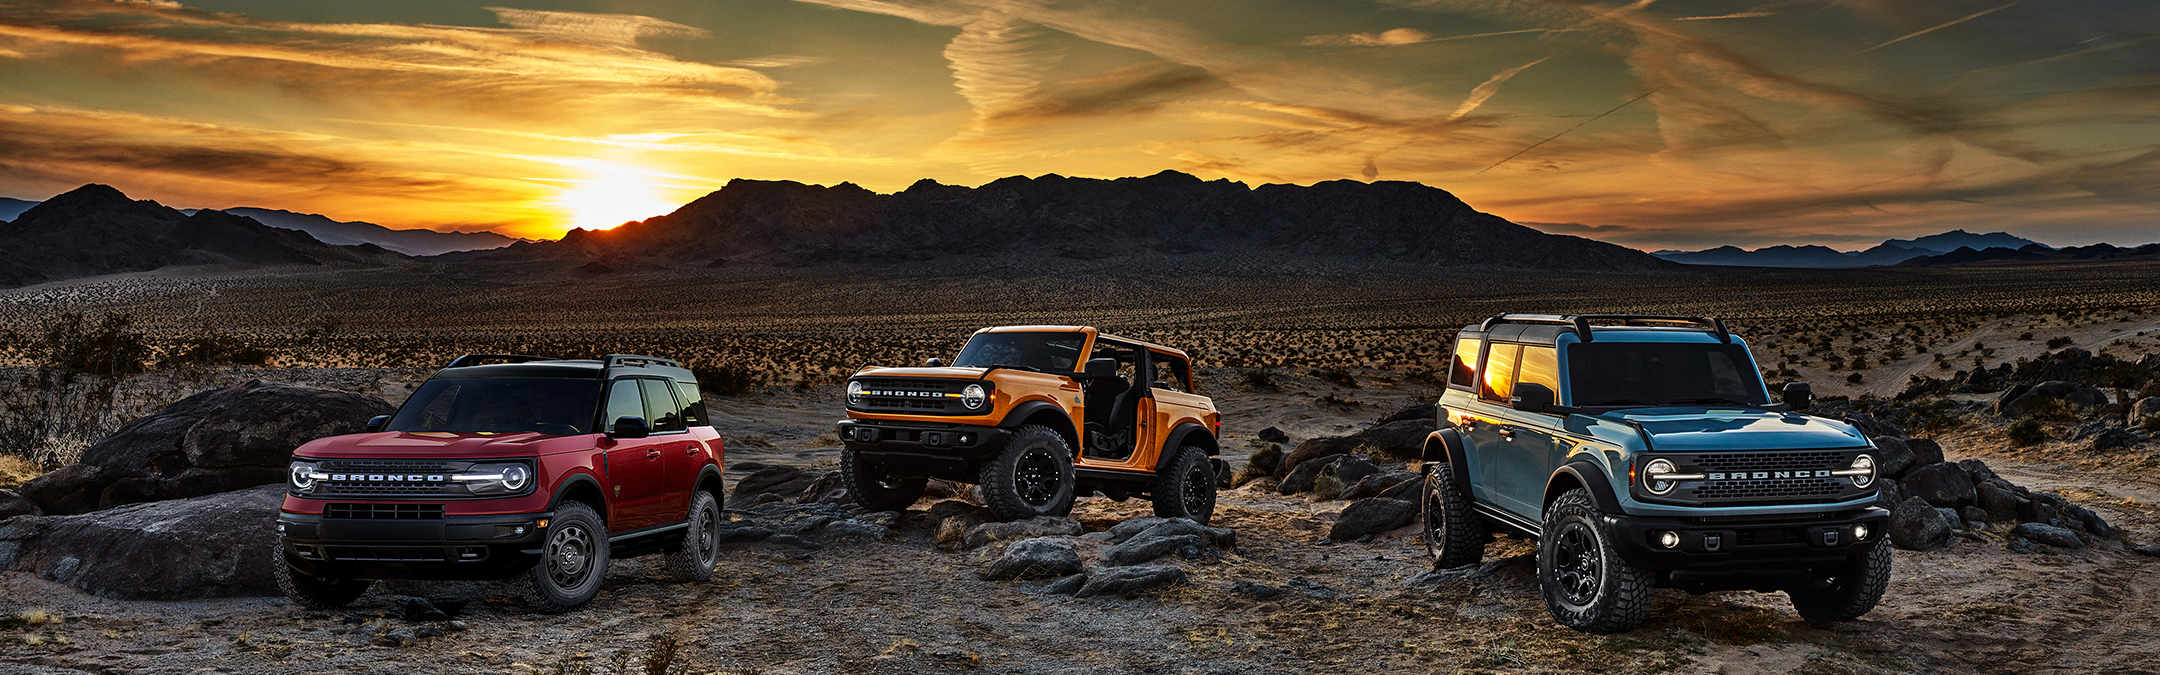 the 2021 ford bronco 2-door, 4-door, and sport. built ford proud.